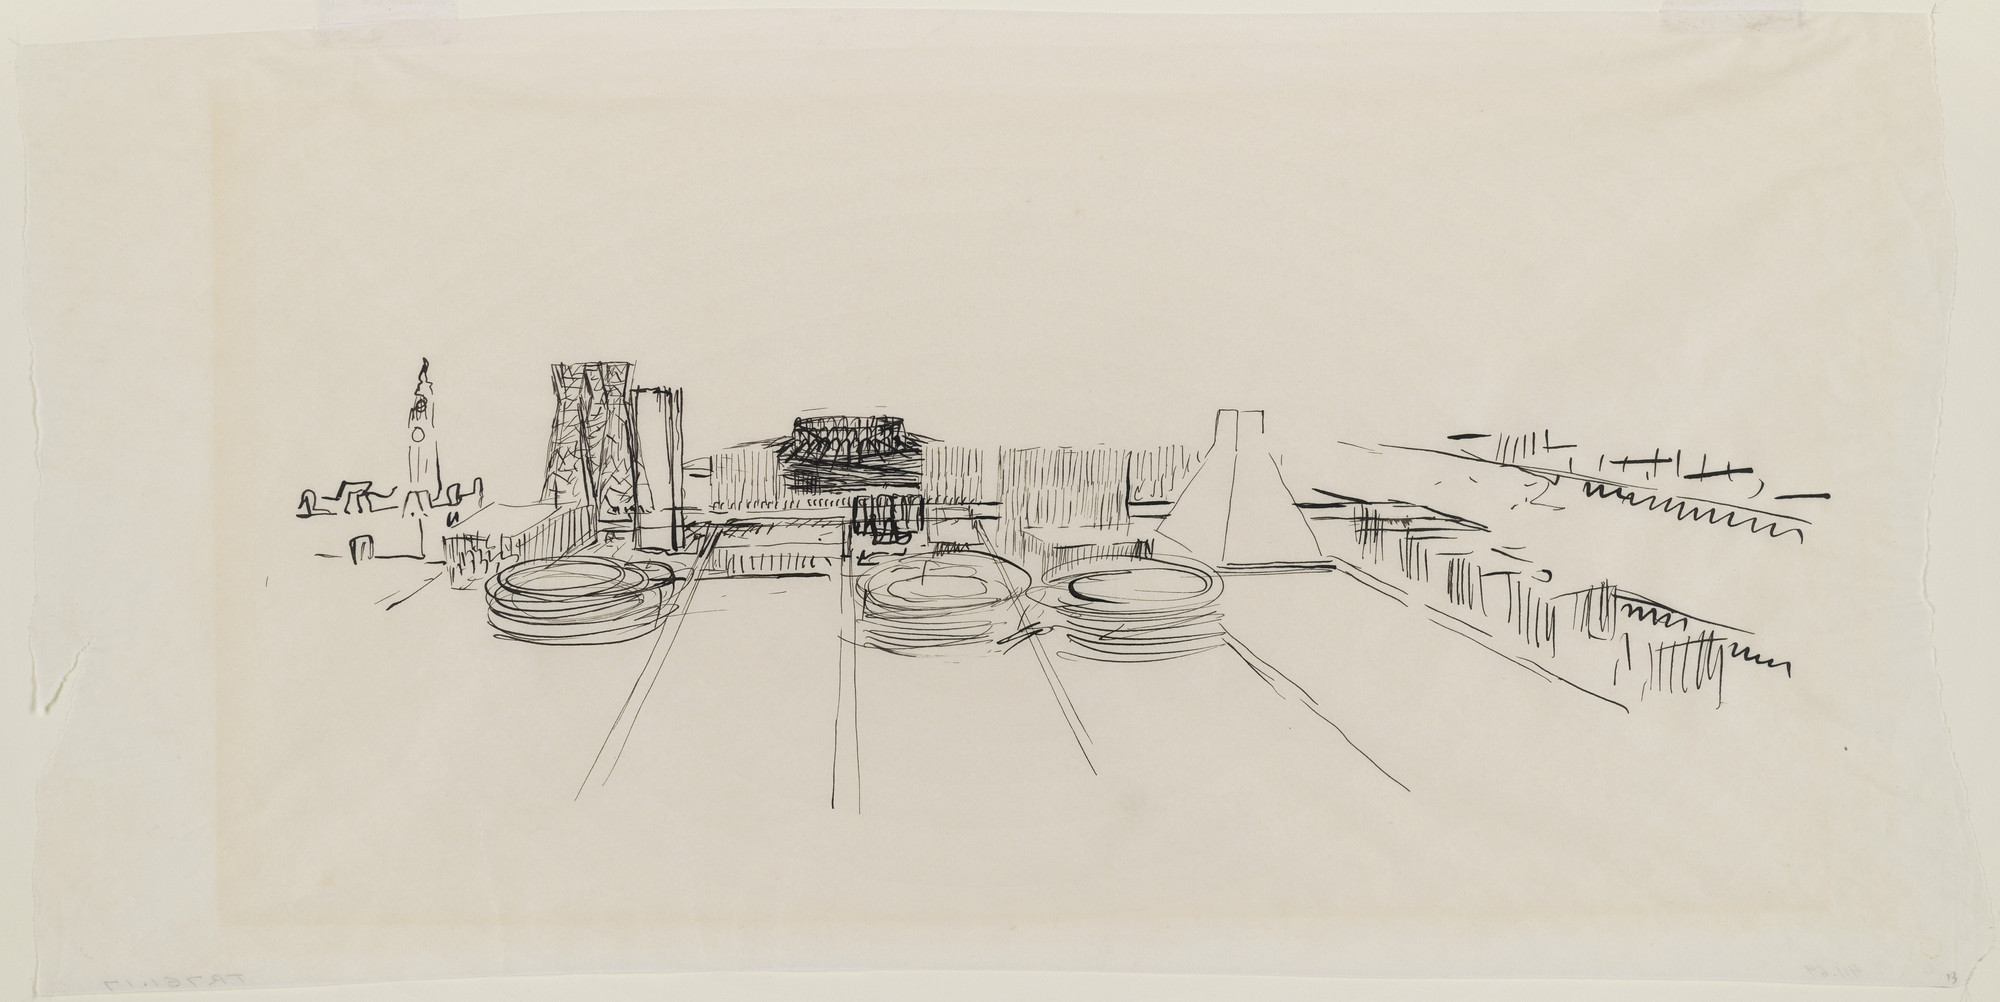 Louis I. Kahn. Civic Center Studies, project, Philadelphia, Pennsylvania, Aerial perspective. 1956-57